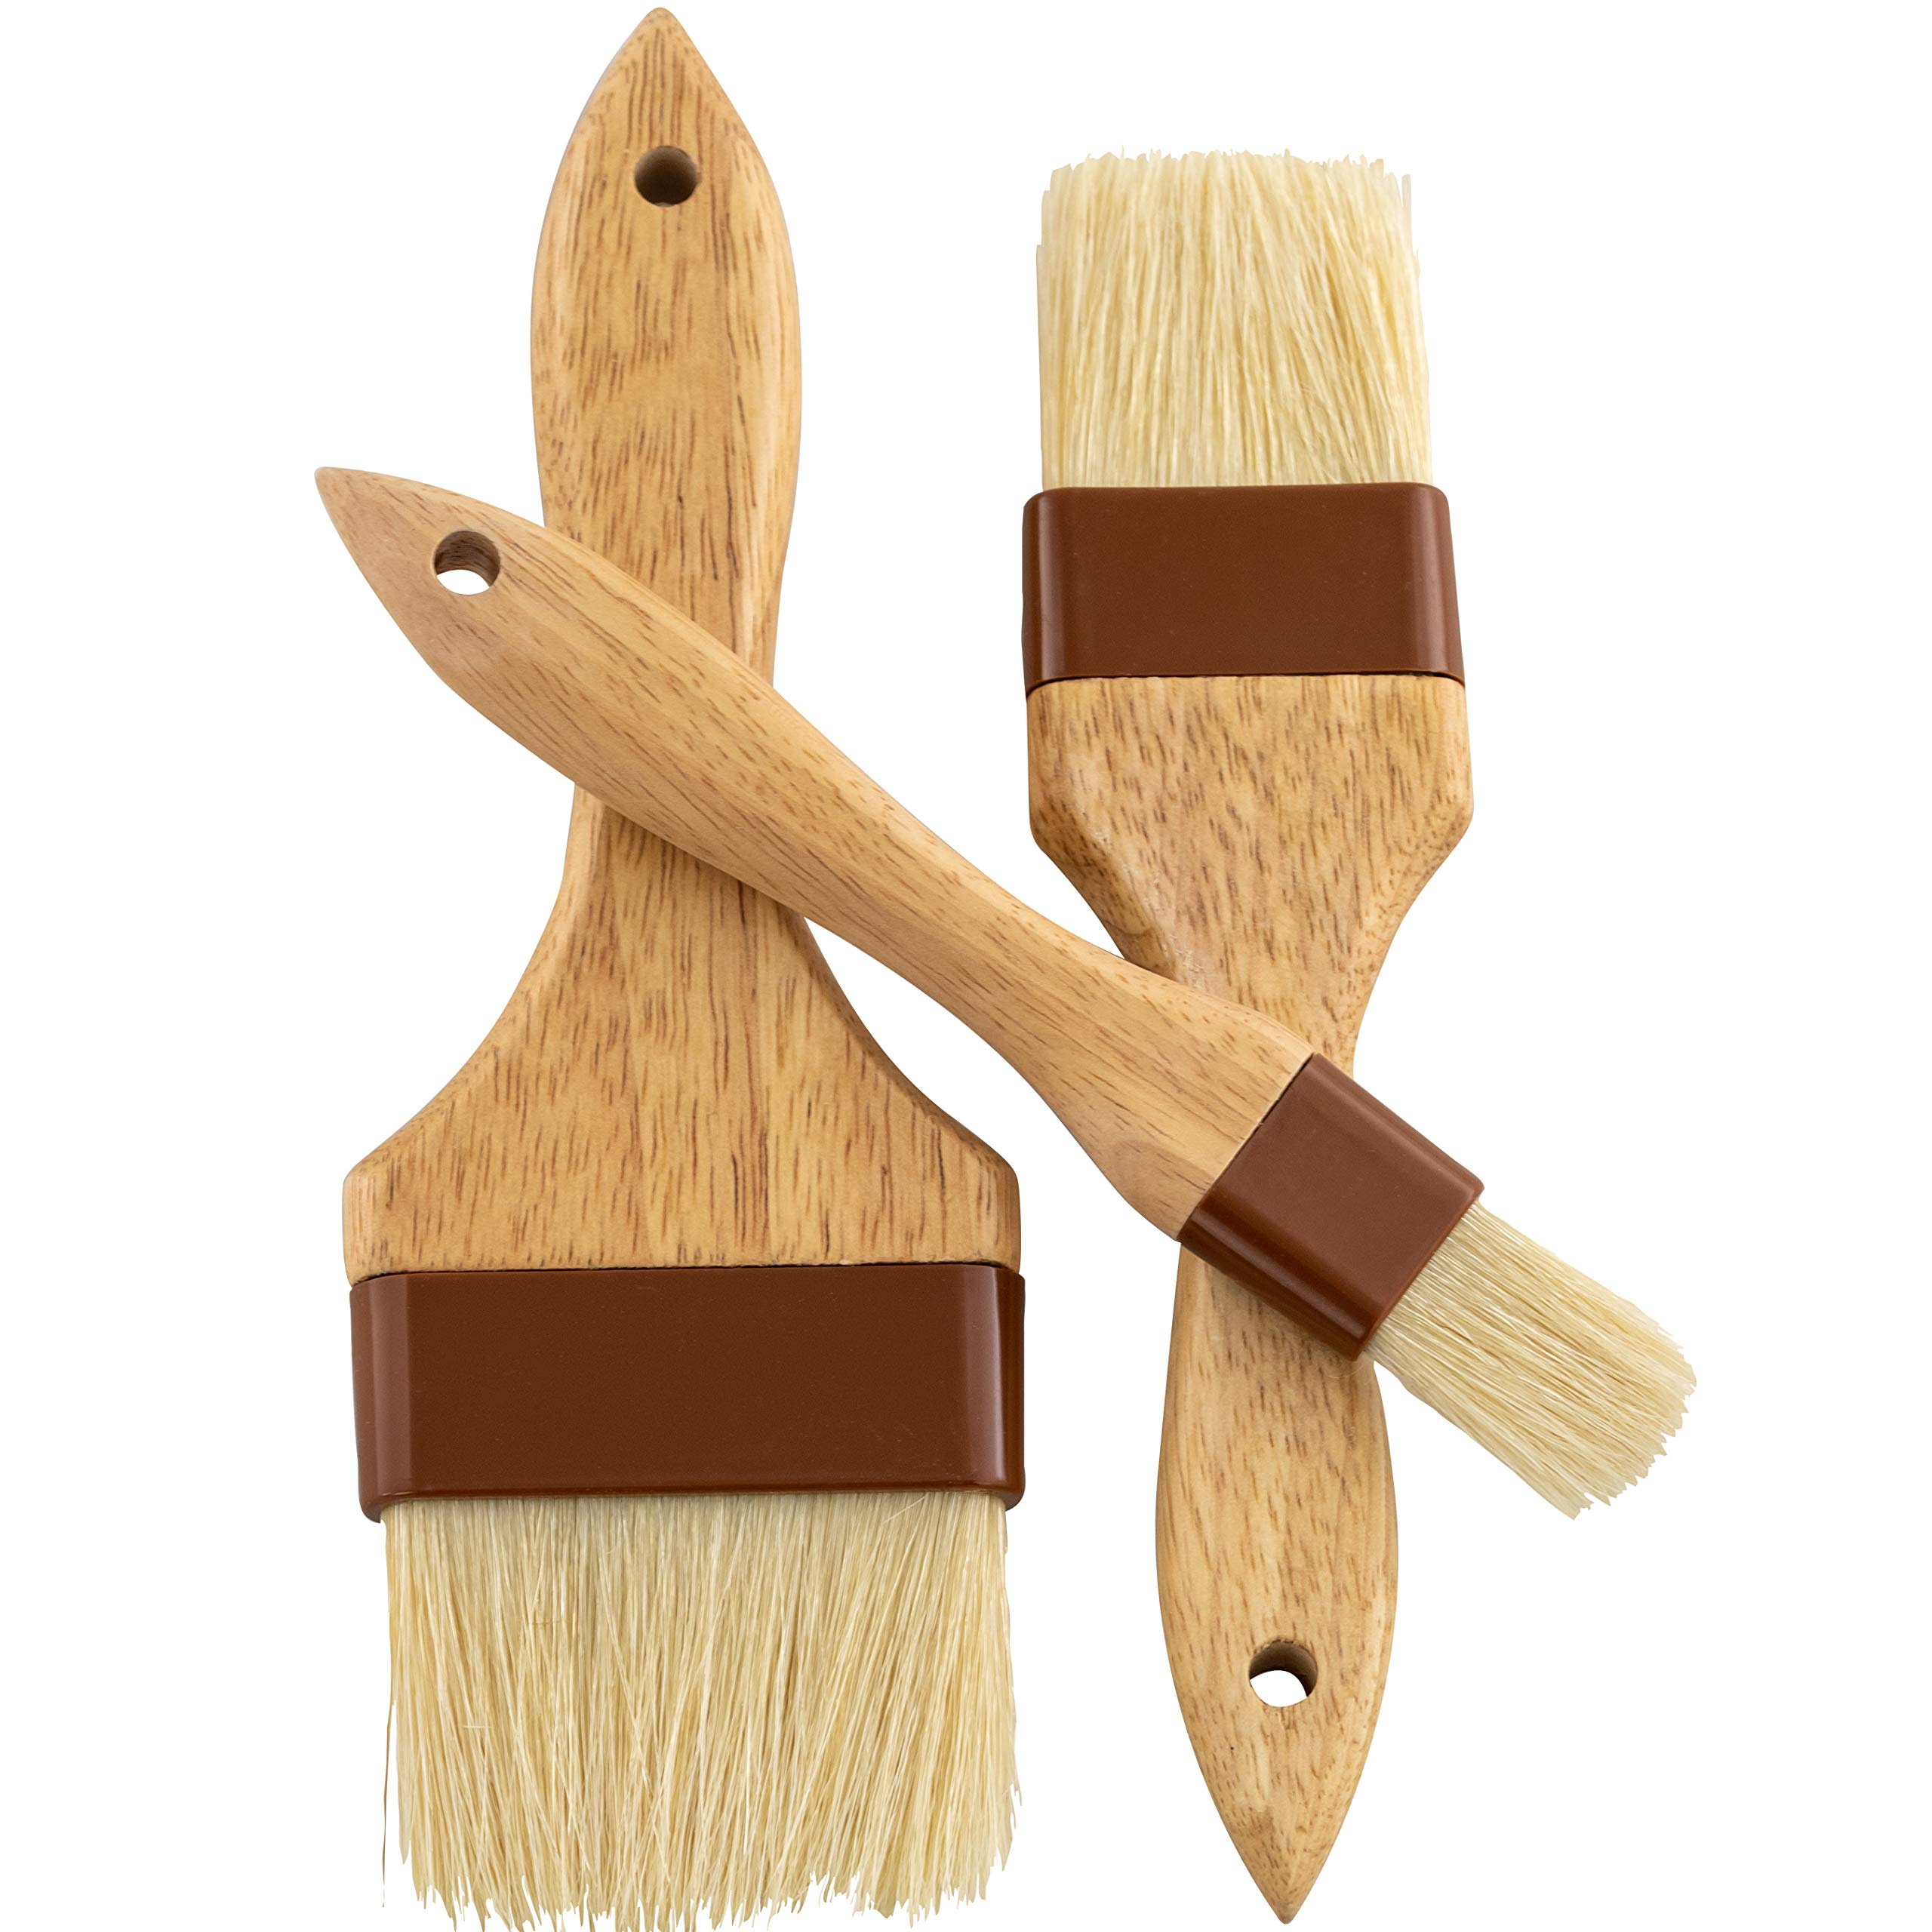 Restaurant-Grade Boar Hair Pastry and Basting Brush Set of 3 (1, 2 and 3 Inch). Ultra-Fine Hardwood Flat Brushes for Spreading Butter, Egg Wash or Marinade to Pastries, Dessert, Bread Dough or Meat by Avant Grub